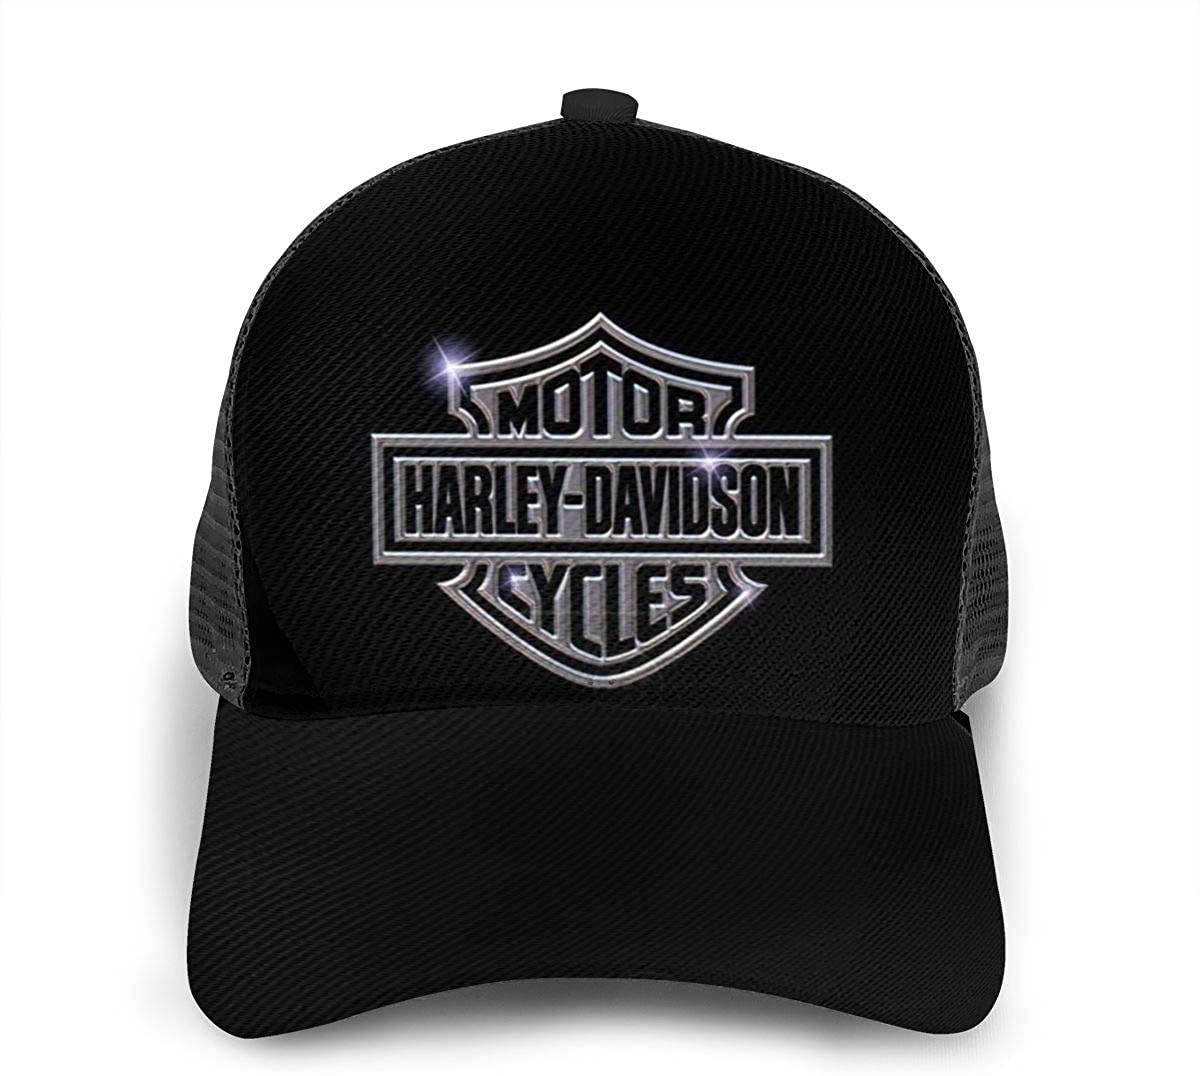 Ha-Rl-Ey Da_Vid_Son Top Fashion Men Women Athletic Baseball Fitted Cap Mesh Back Hat Plain Hat Black